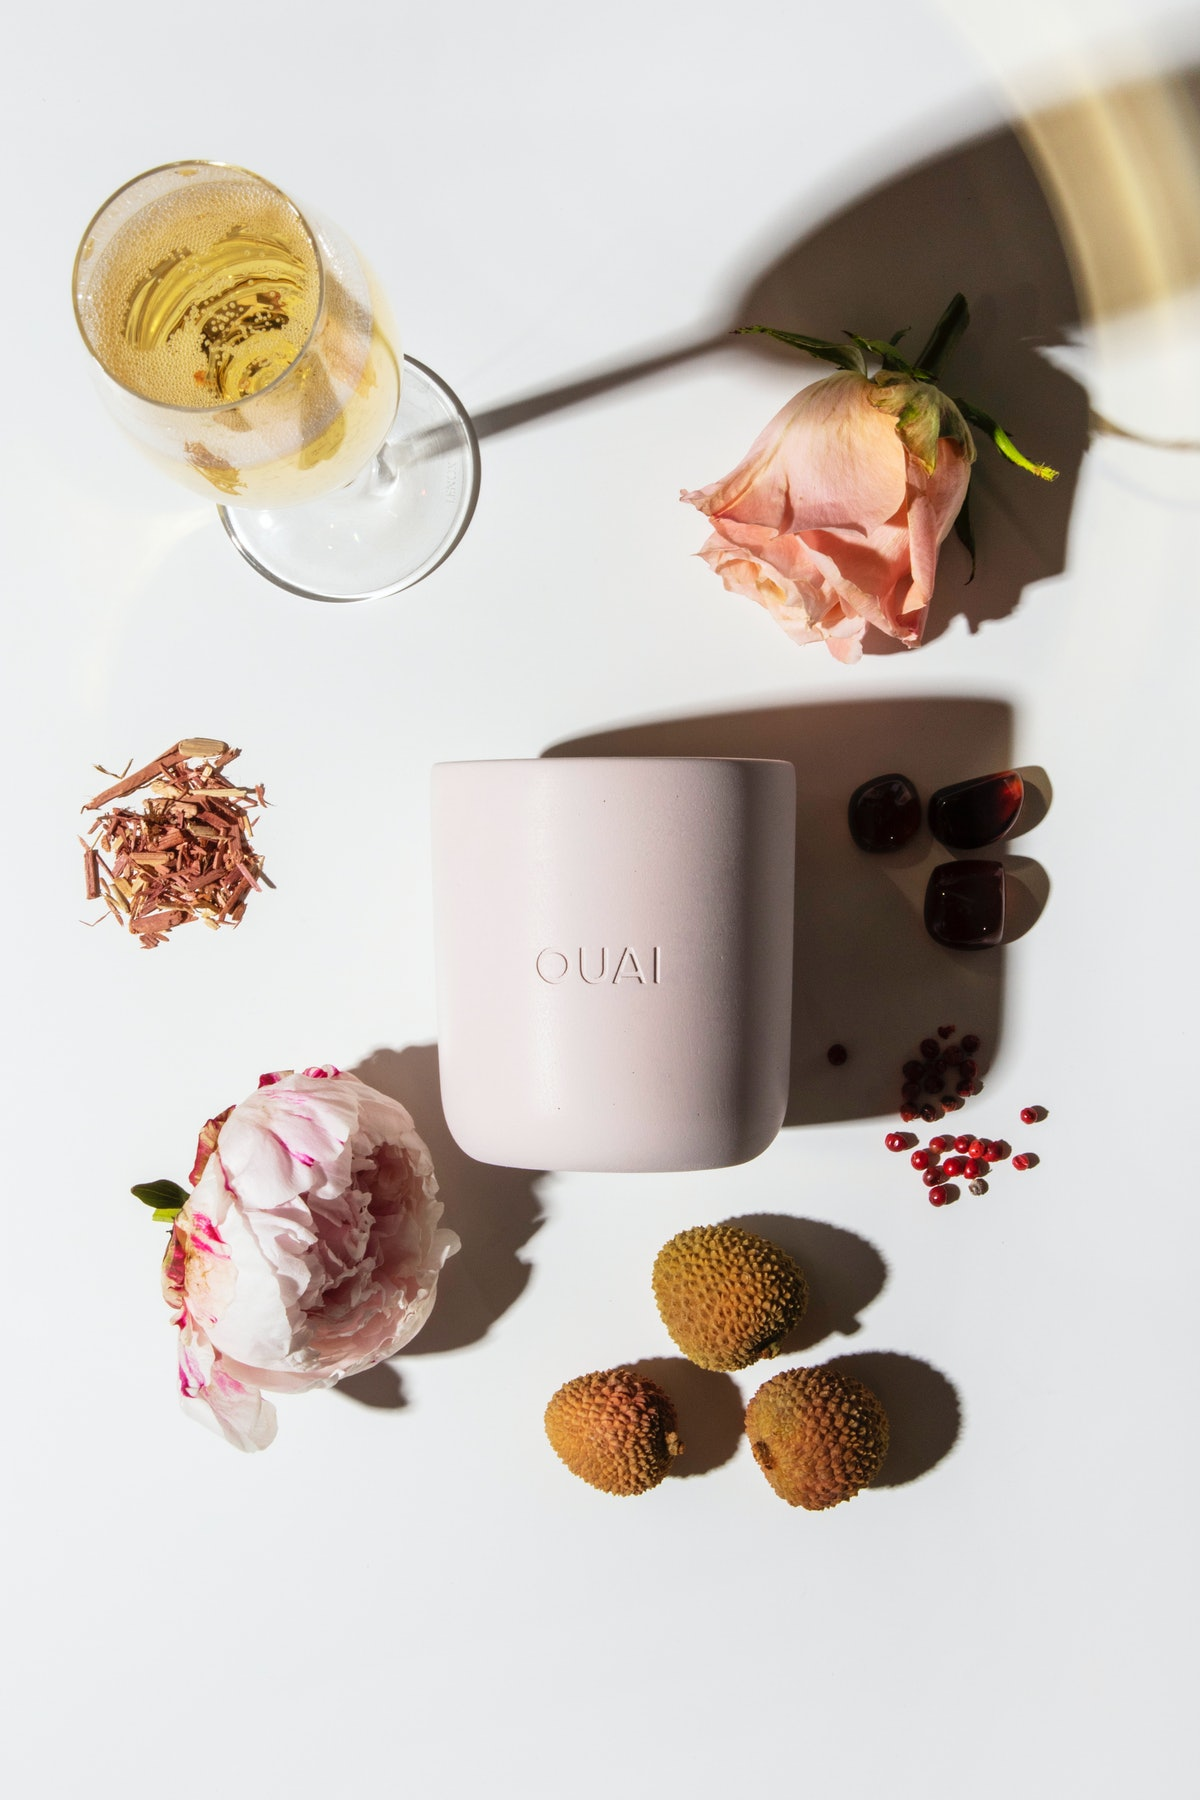 Ouai candle in Melrose Place surrounded by ingredients flat lay